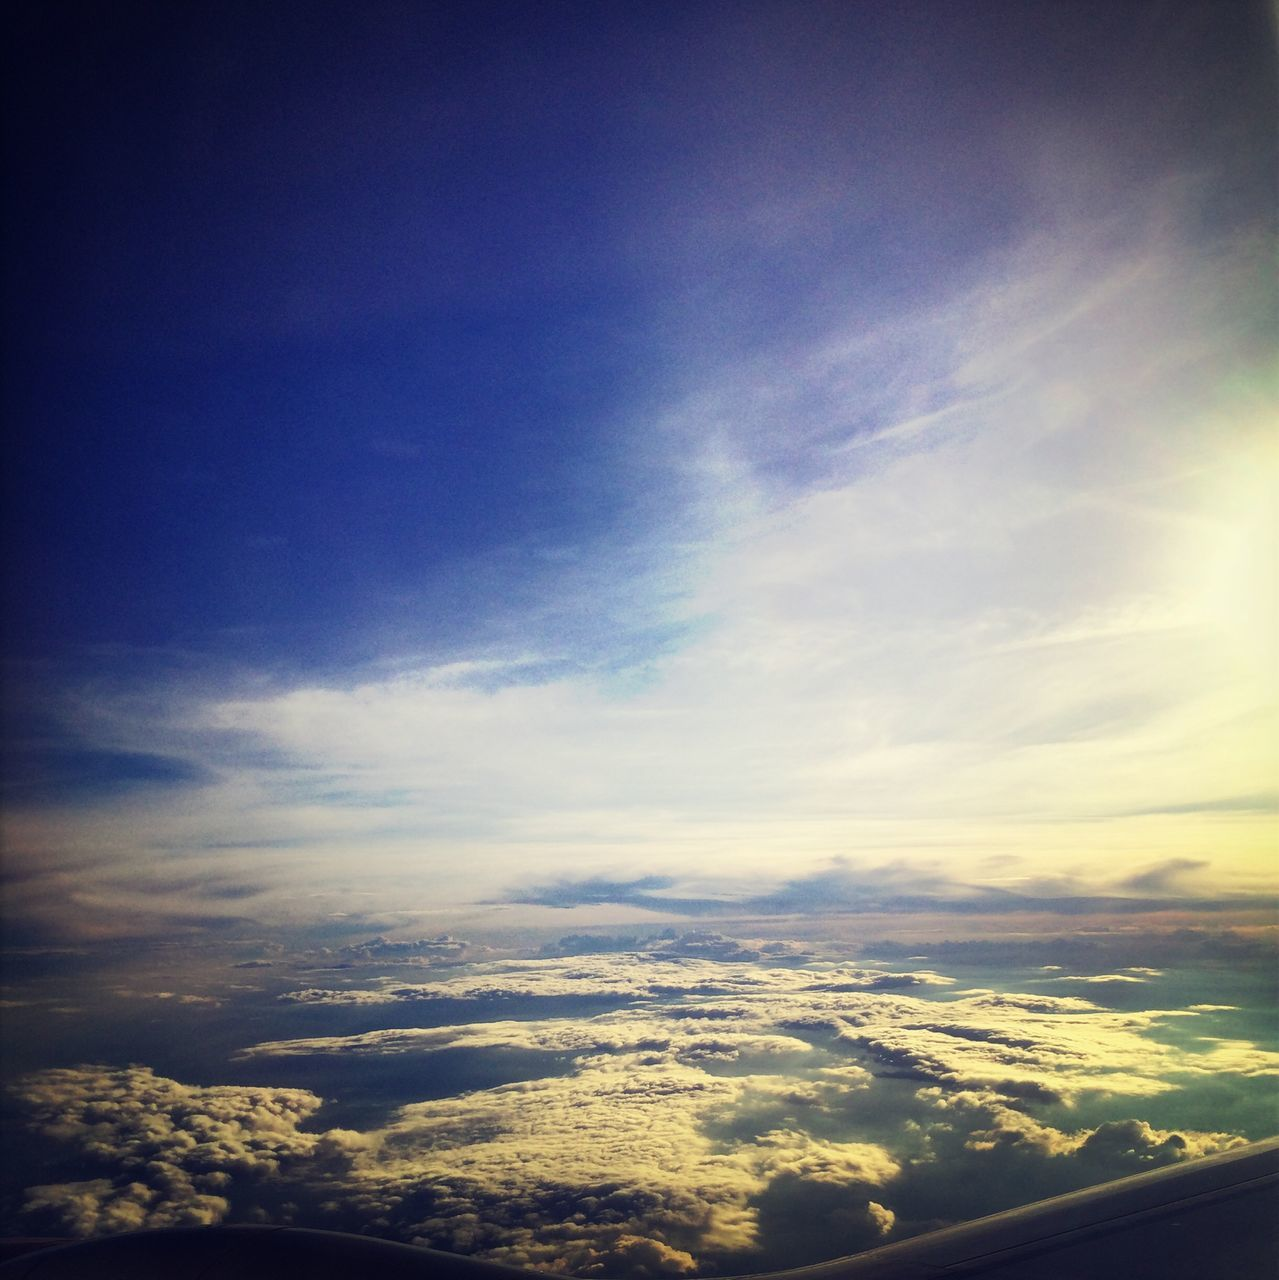 beauty in nature, nature, sky, cloud - sky, scenics, cloudscape, no people, tranquility, tranquil scene, blue, outdoors, day, airplane wing